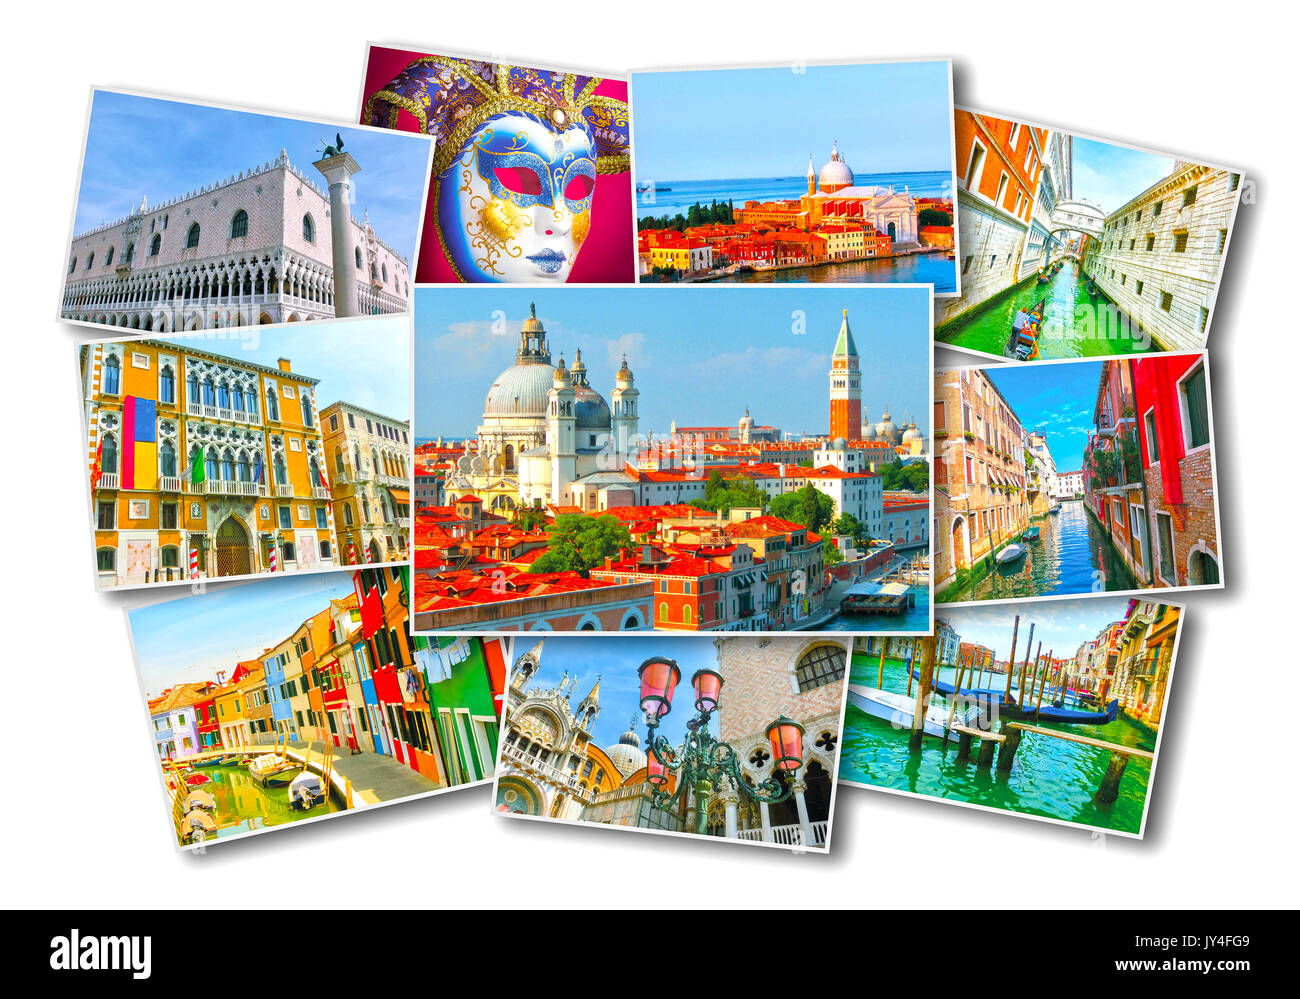 Collage of images from Venice - Stock Image